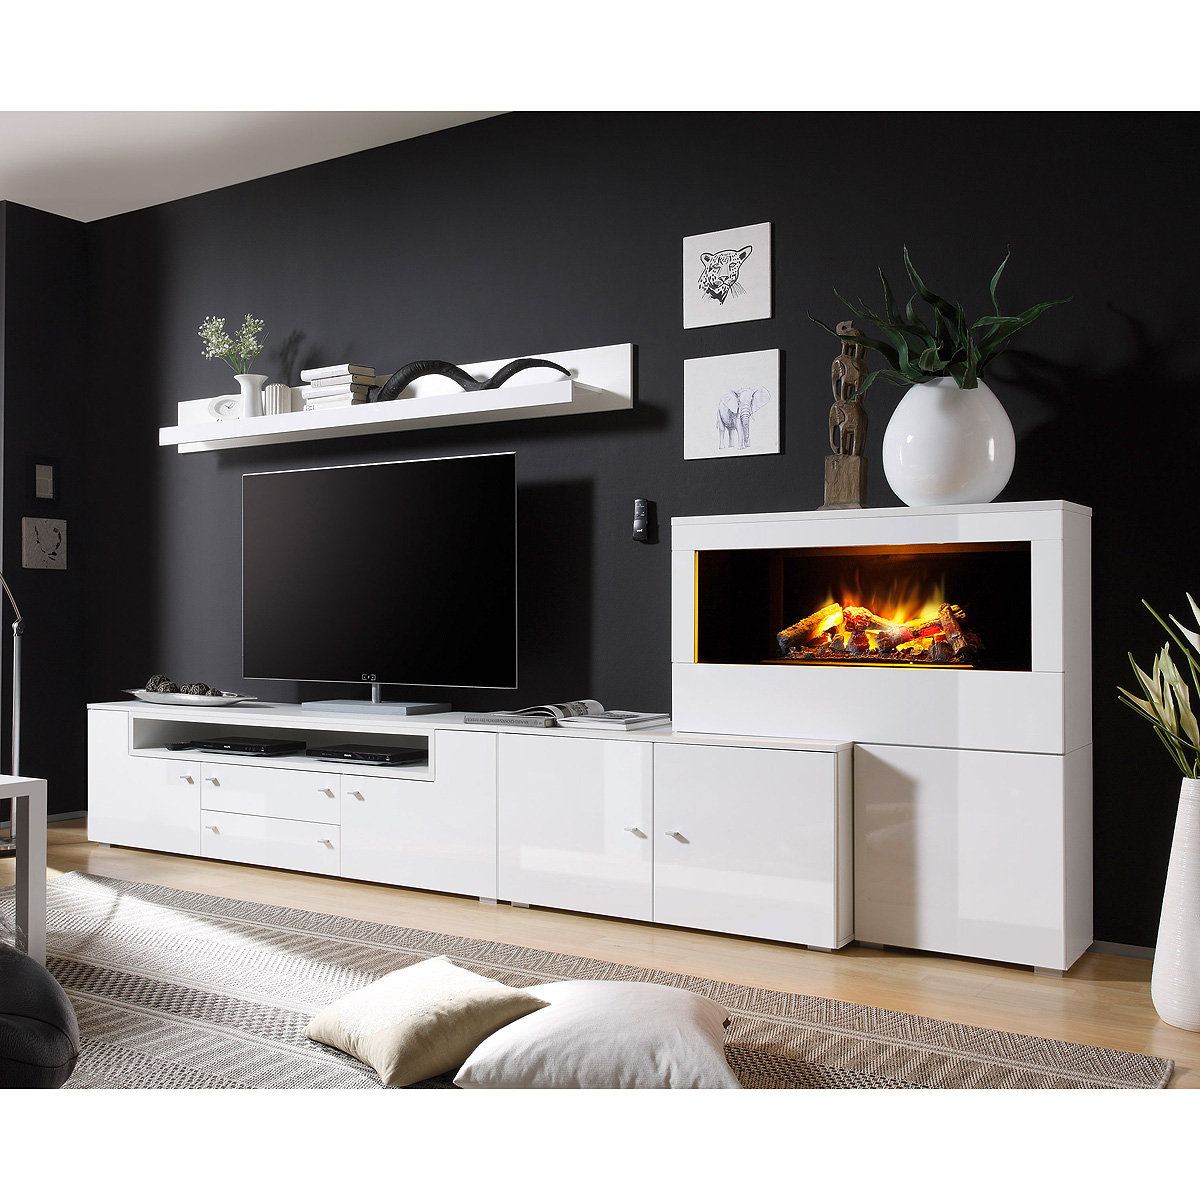 anbauwand mit kamin alles ber wohndesign und m belideen. Black Bedroom Furniture Sets. Home Design Ideas